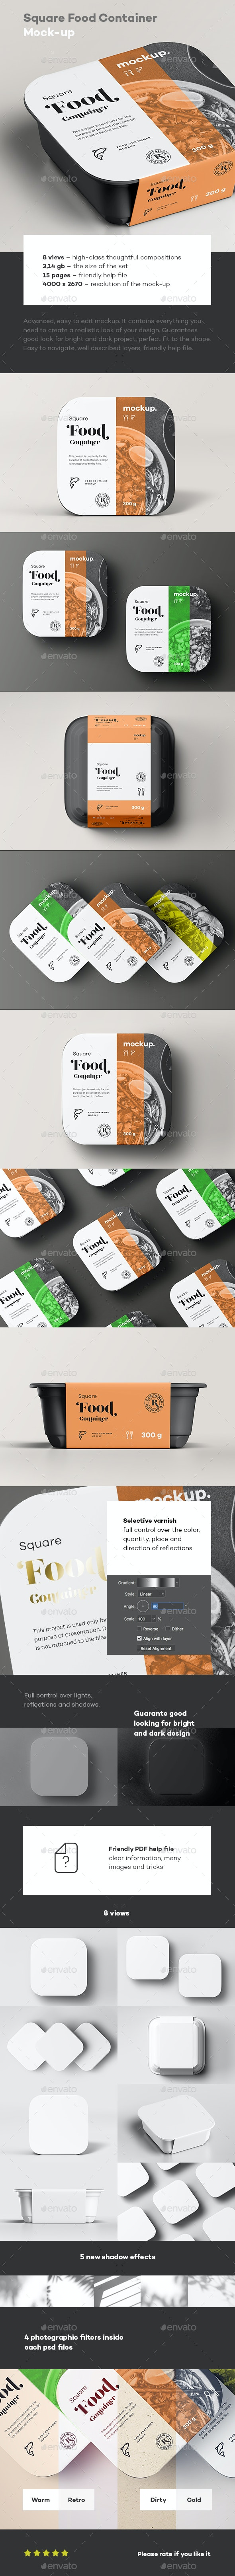 Square Food Container Mock-up - Food and Drink Packaging